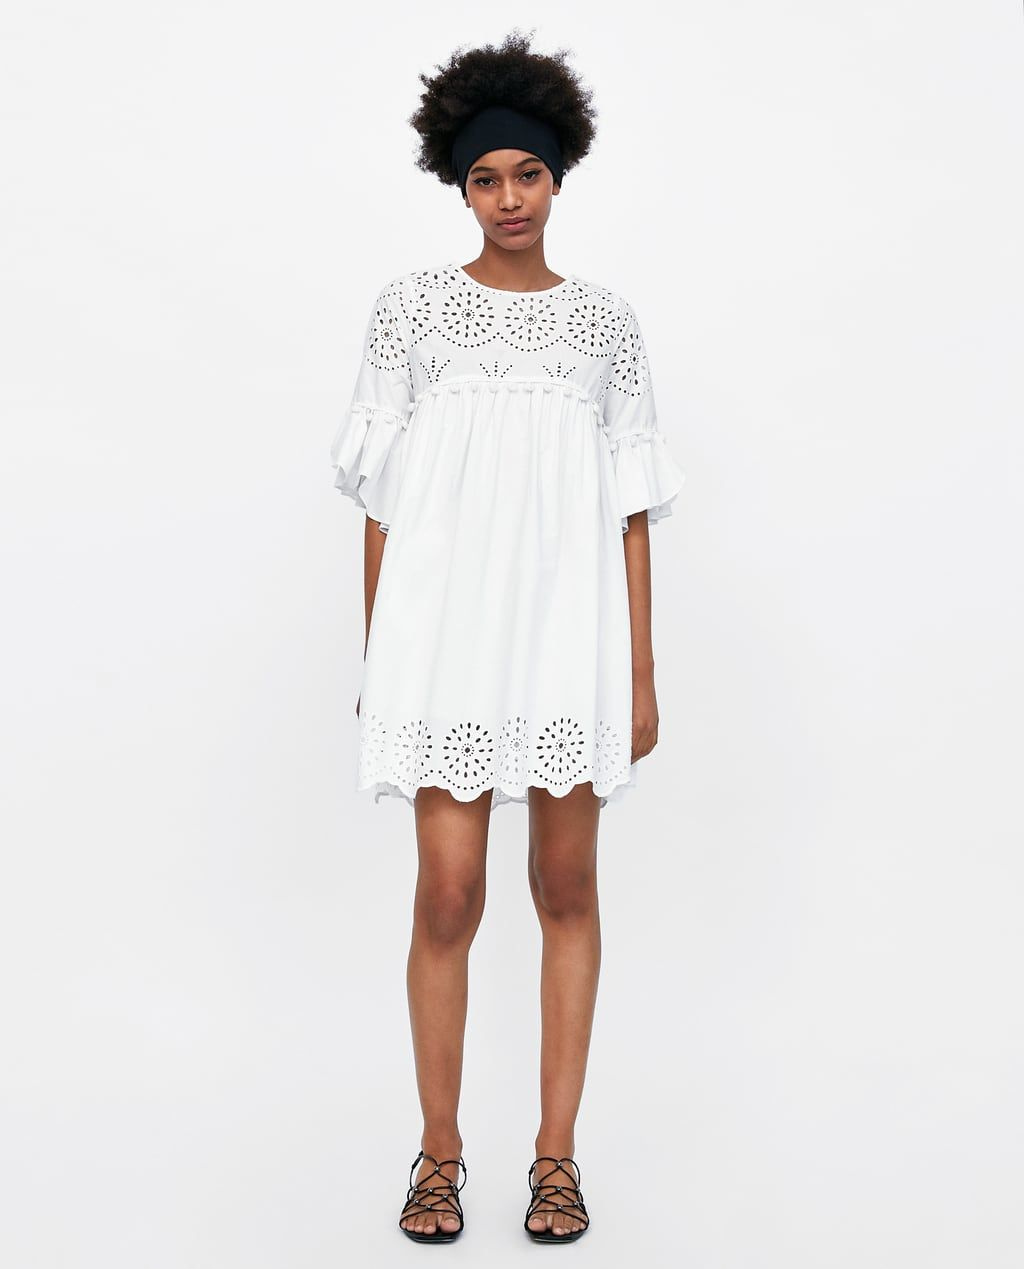 168a26244fdb Image 1 of EMBROIDERED DRESS WITH PERFORATIONS from Zara | Artwork ...